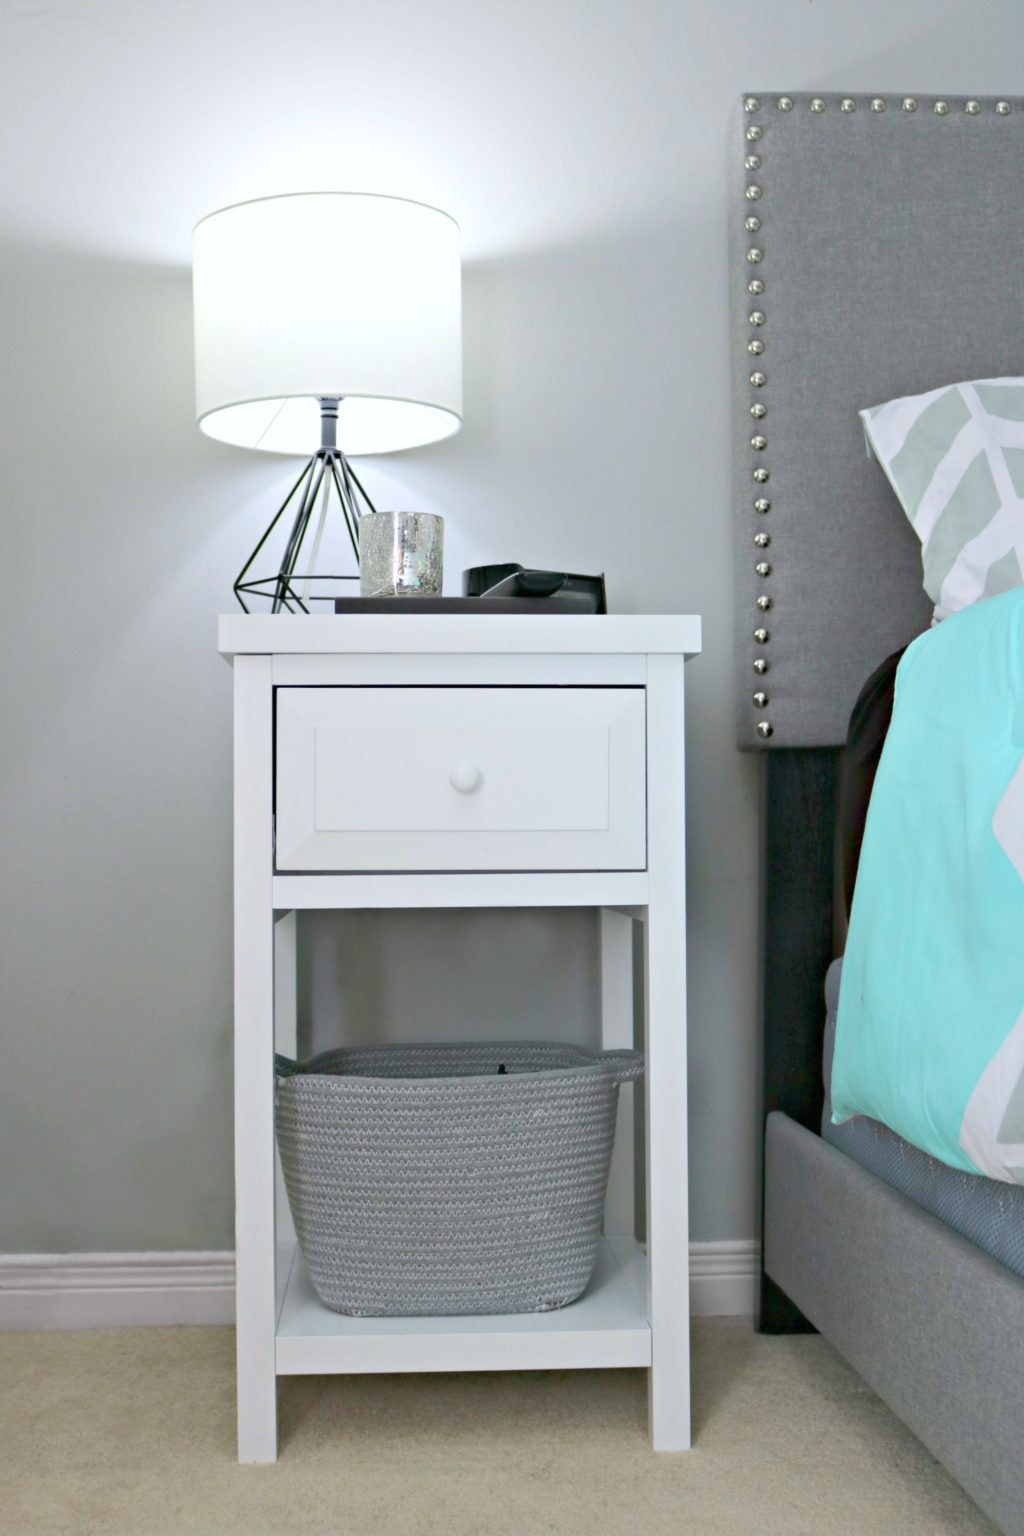 How to Spruce Up Your Bedroom in 6 Easy Steps!